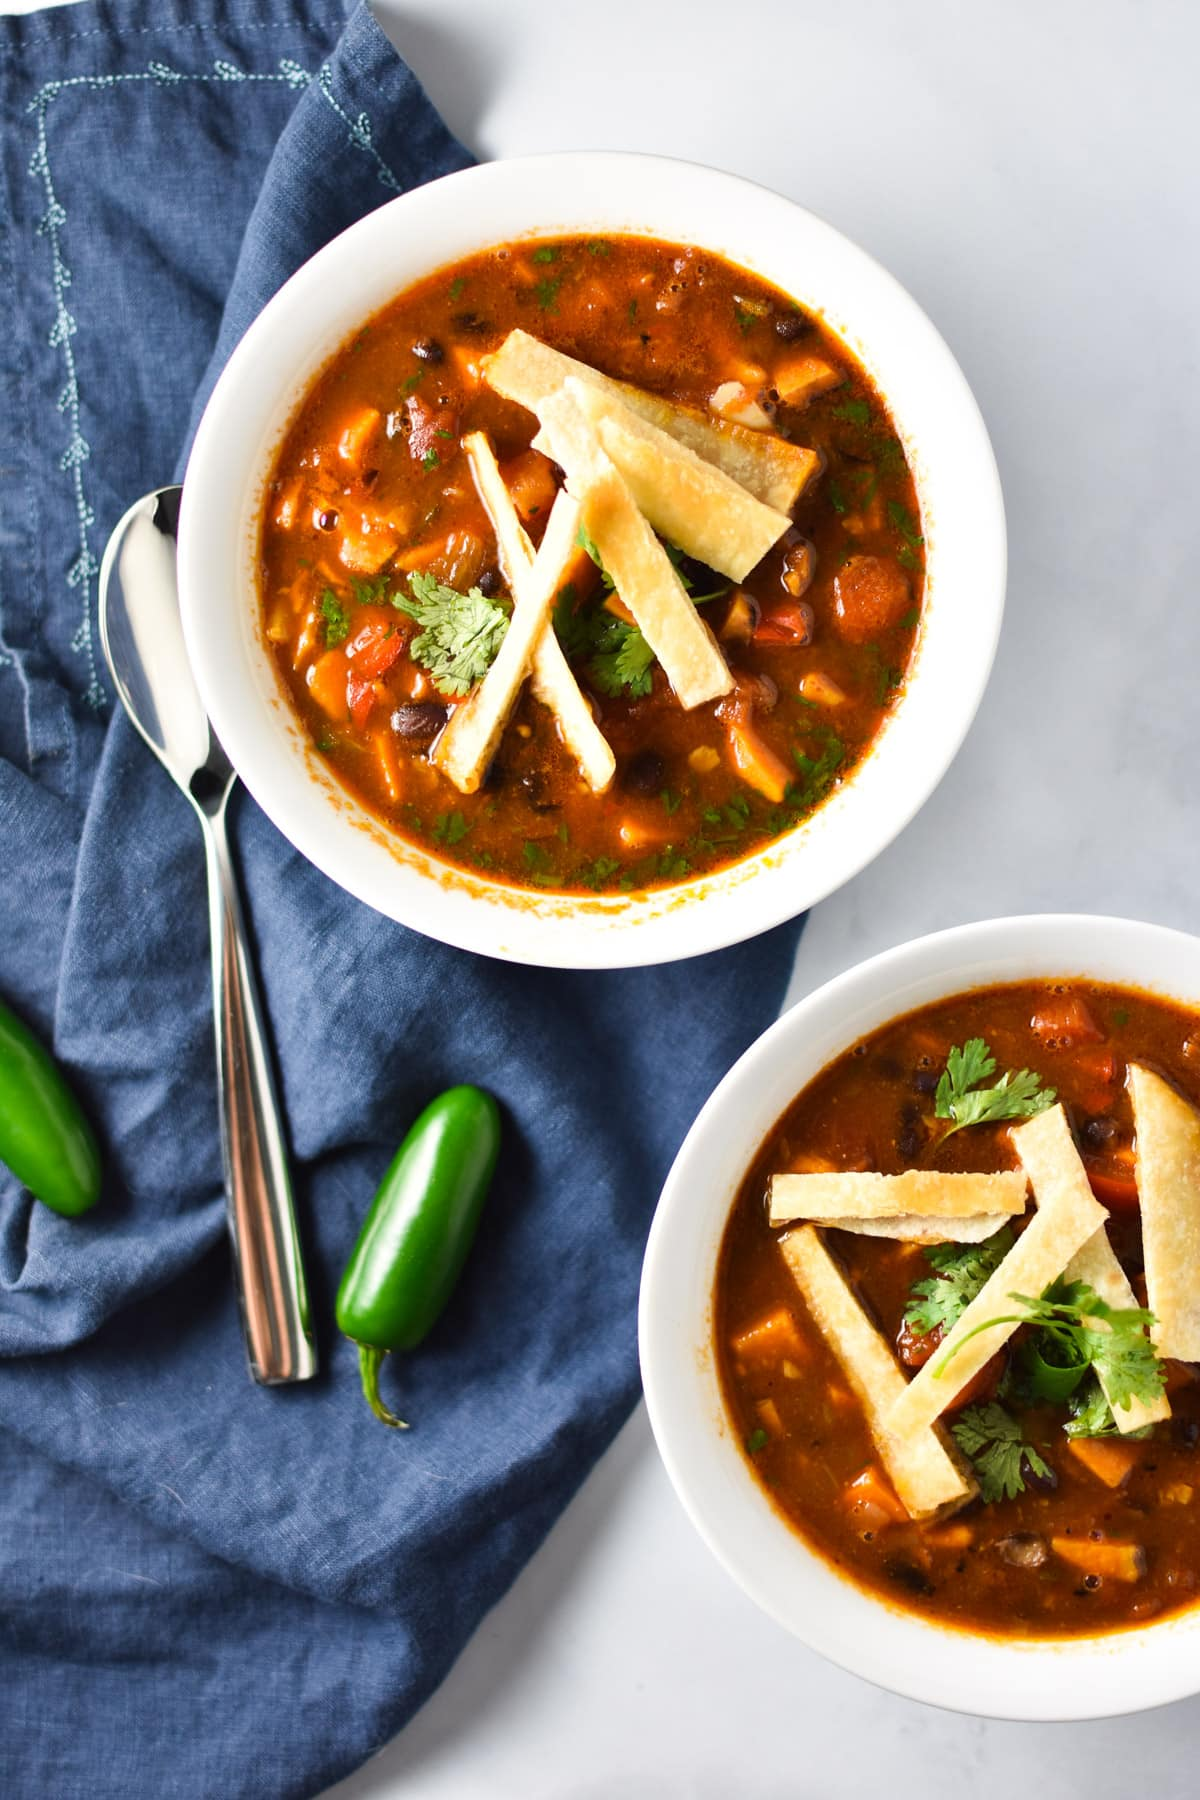 Vegan Tortilla Soup that is also gluten free and perfect for cold winter nights and family dinners or lunch. Easy to make with tons of flavor and migraine safe! #vegan #tortillasoup #soup #migrainediet